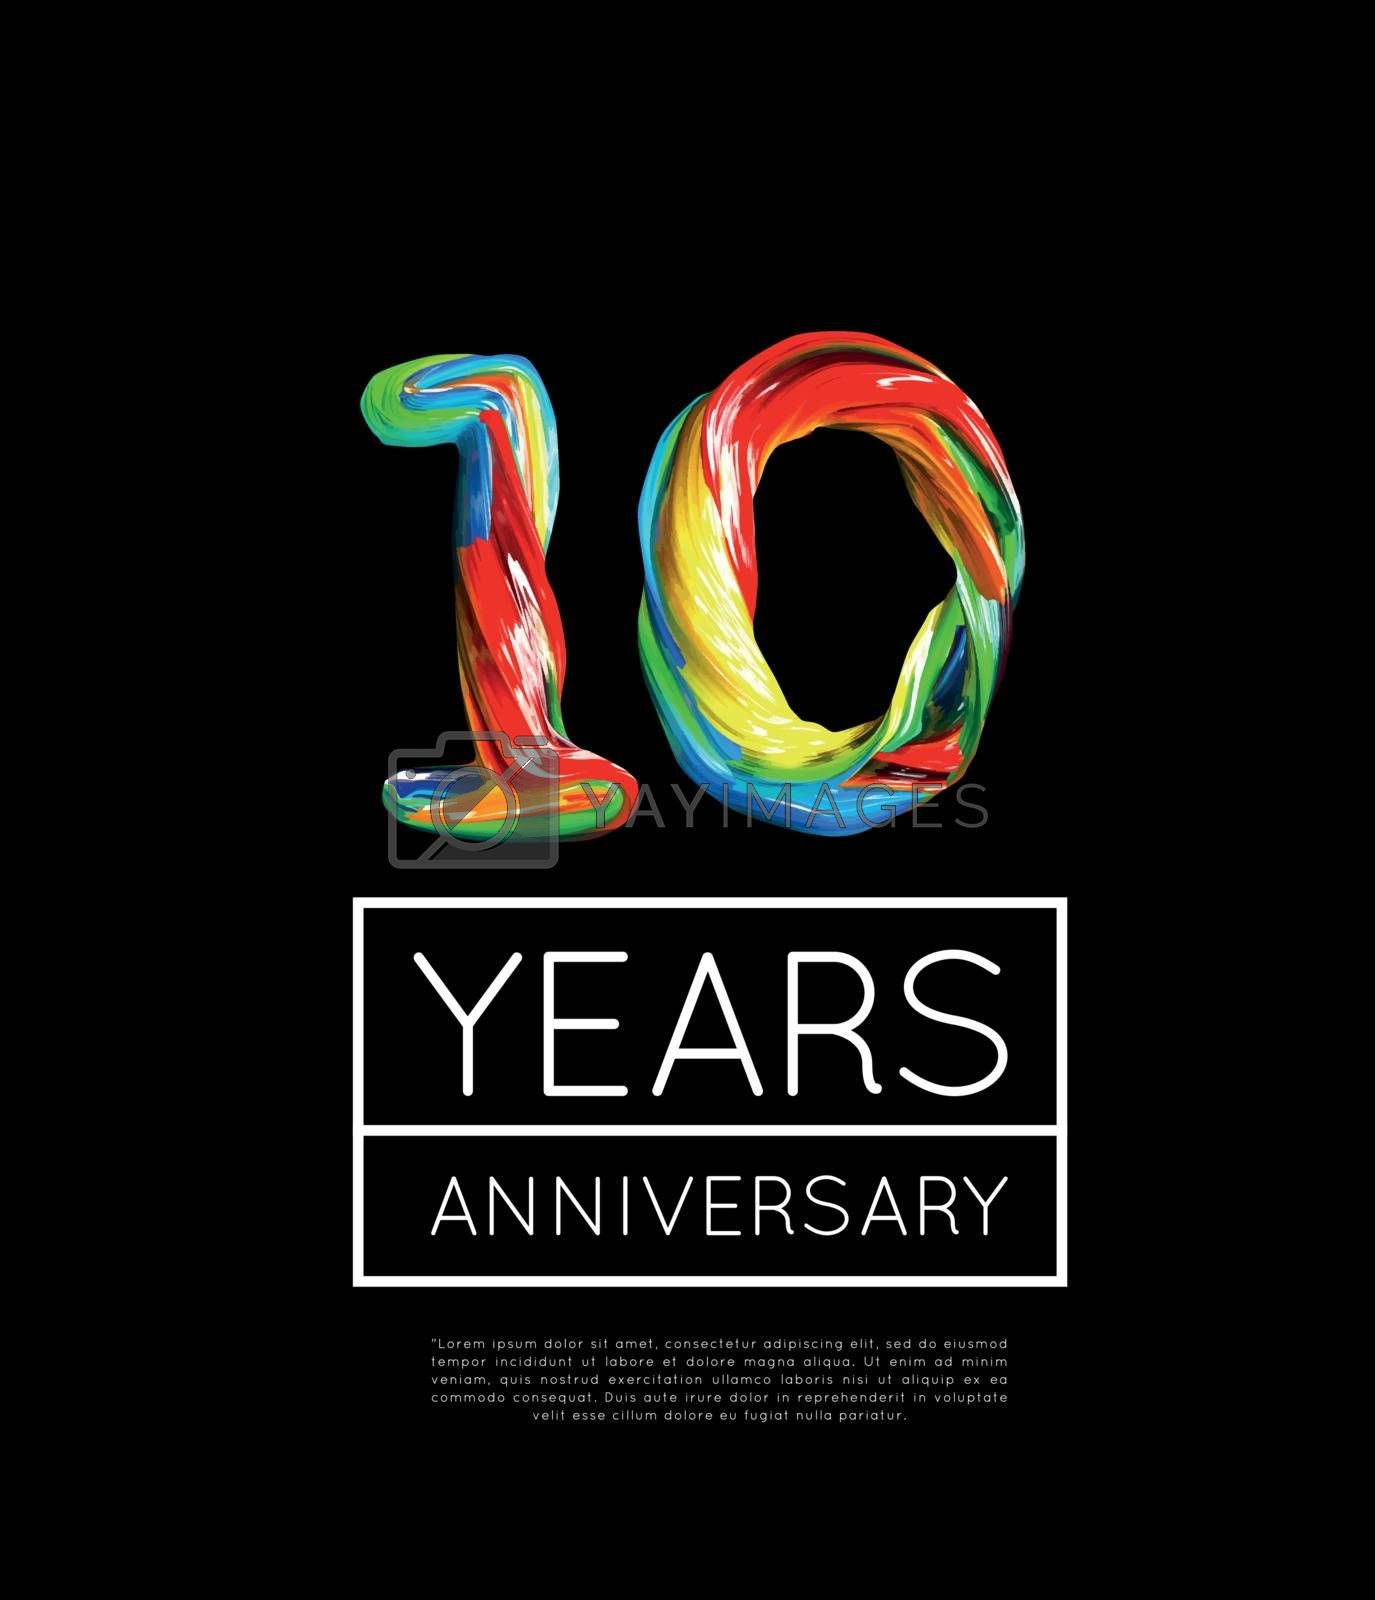 10th Anniversary, congratulation for company or person on black background. Vector illustration